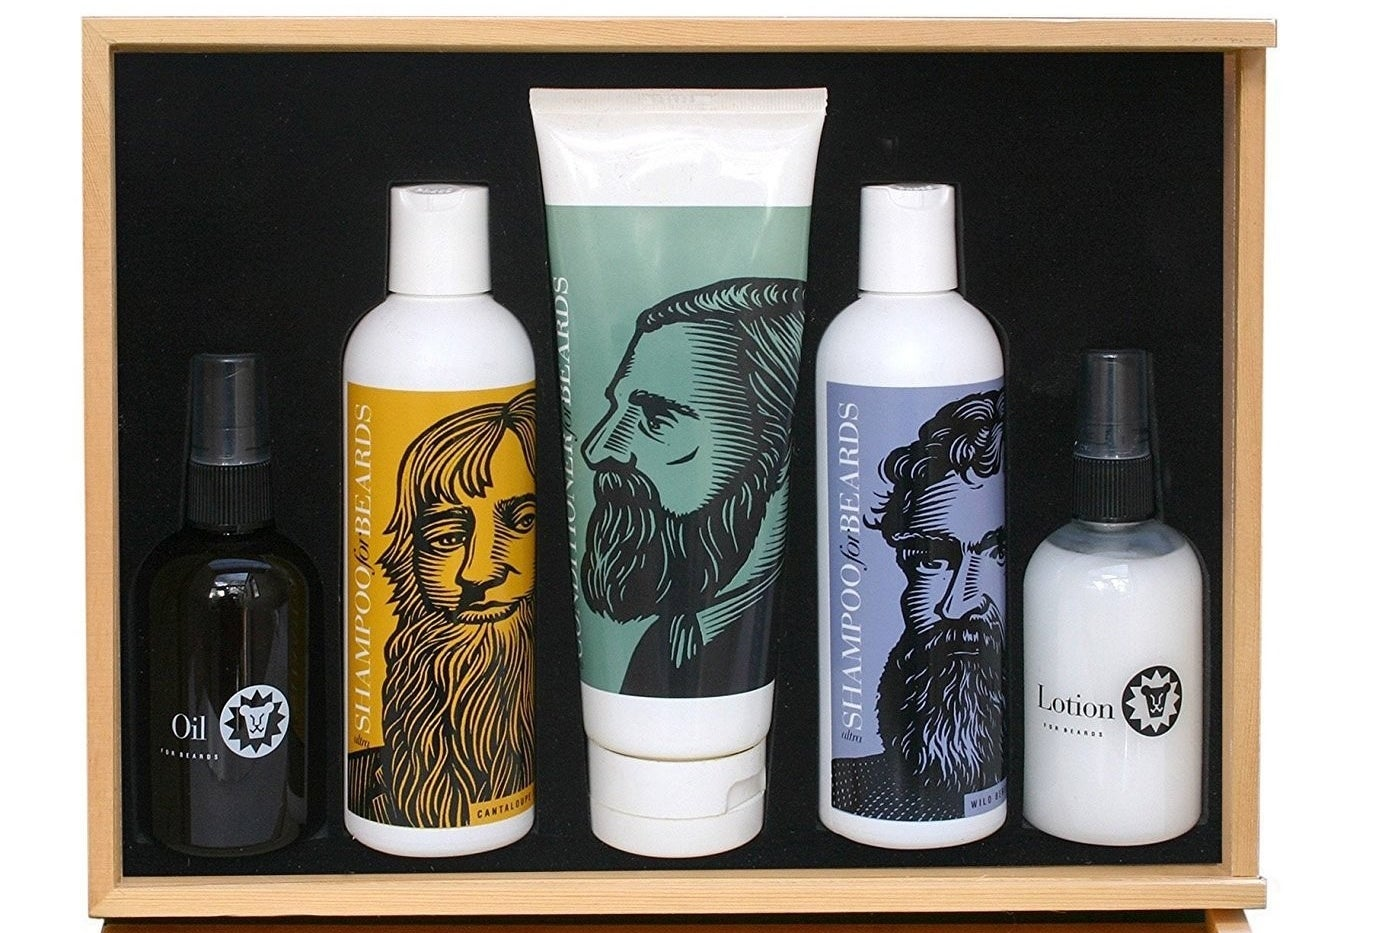 "The kit includes two beard shampoos, beard conditioner, beard lotion, and beard oil. Promising Review: ""This is an awesome kit! The shampoo and conditioner leaves your beard soft, manageable, and smelling good. The lotion and oil has kept my beard moisturized and healthy. I am a first time buyer, but this definitely will not be my last! I wouldn't hesitate to purchase again."" —Davis Bobby 